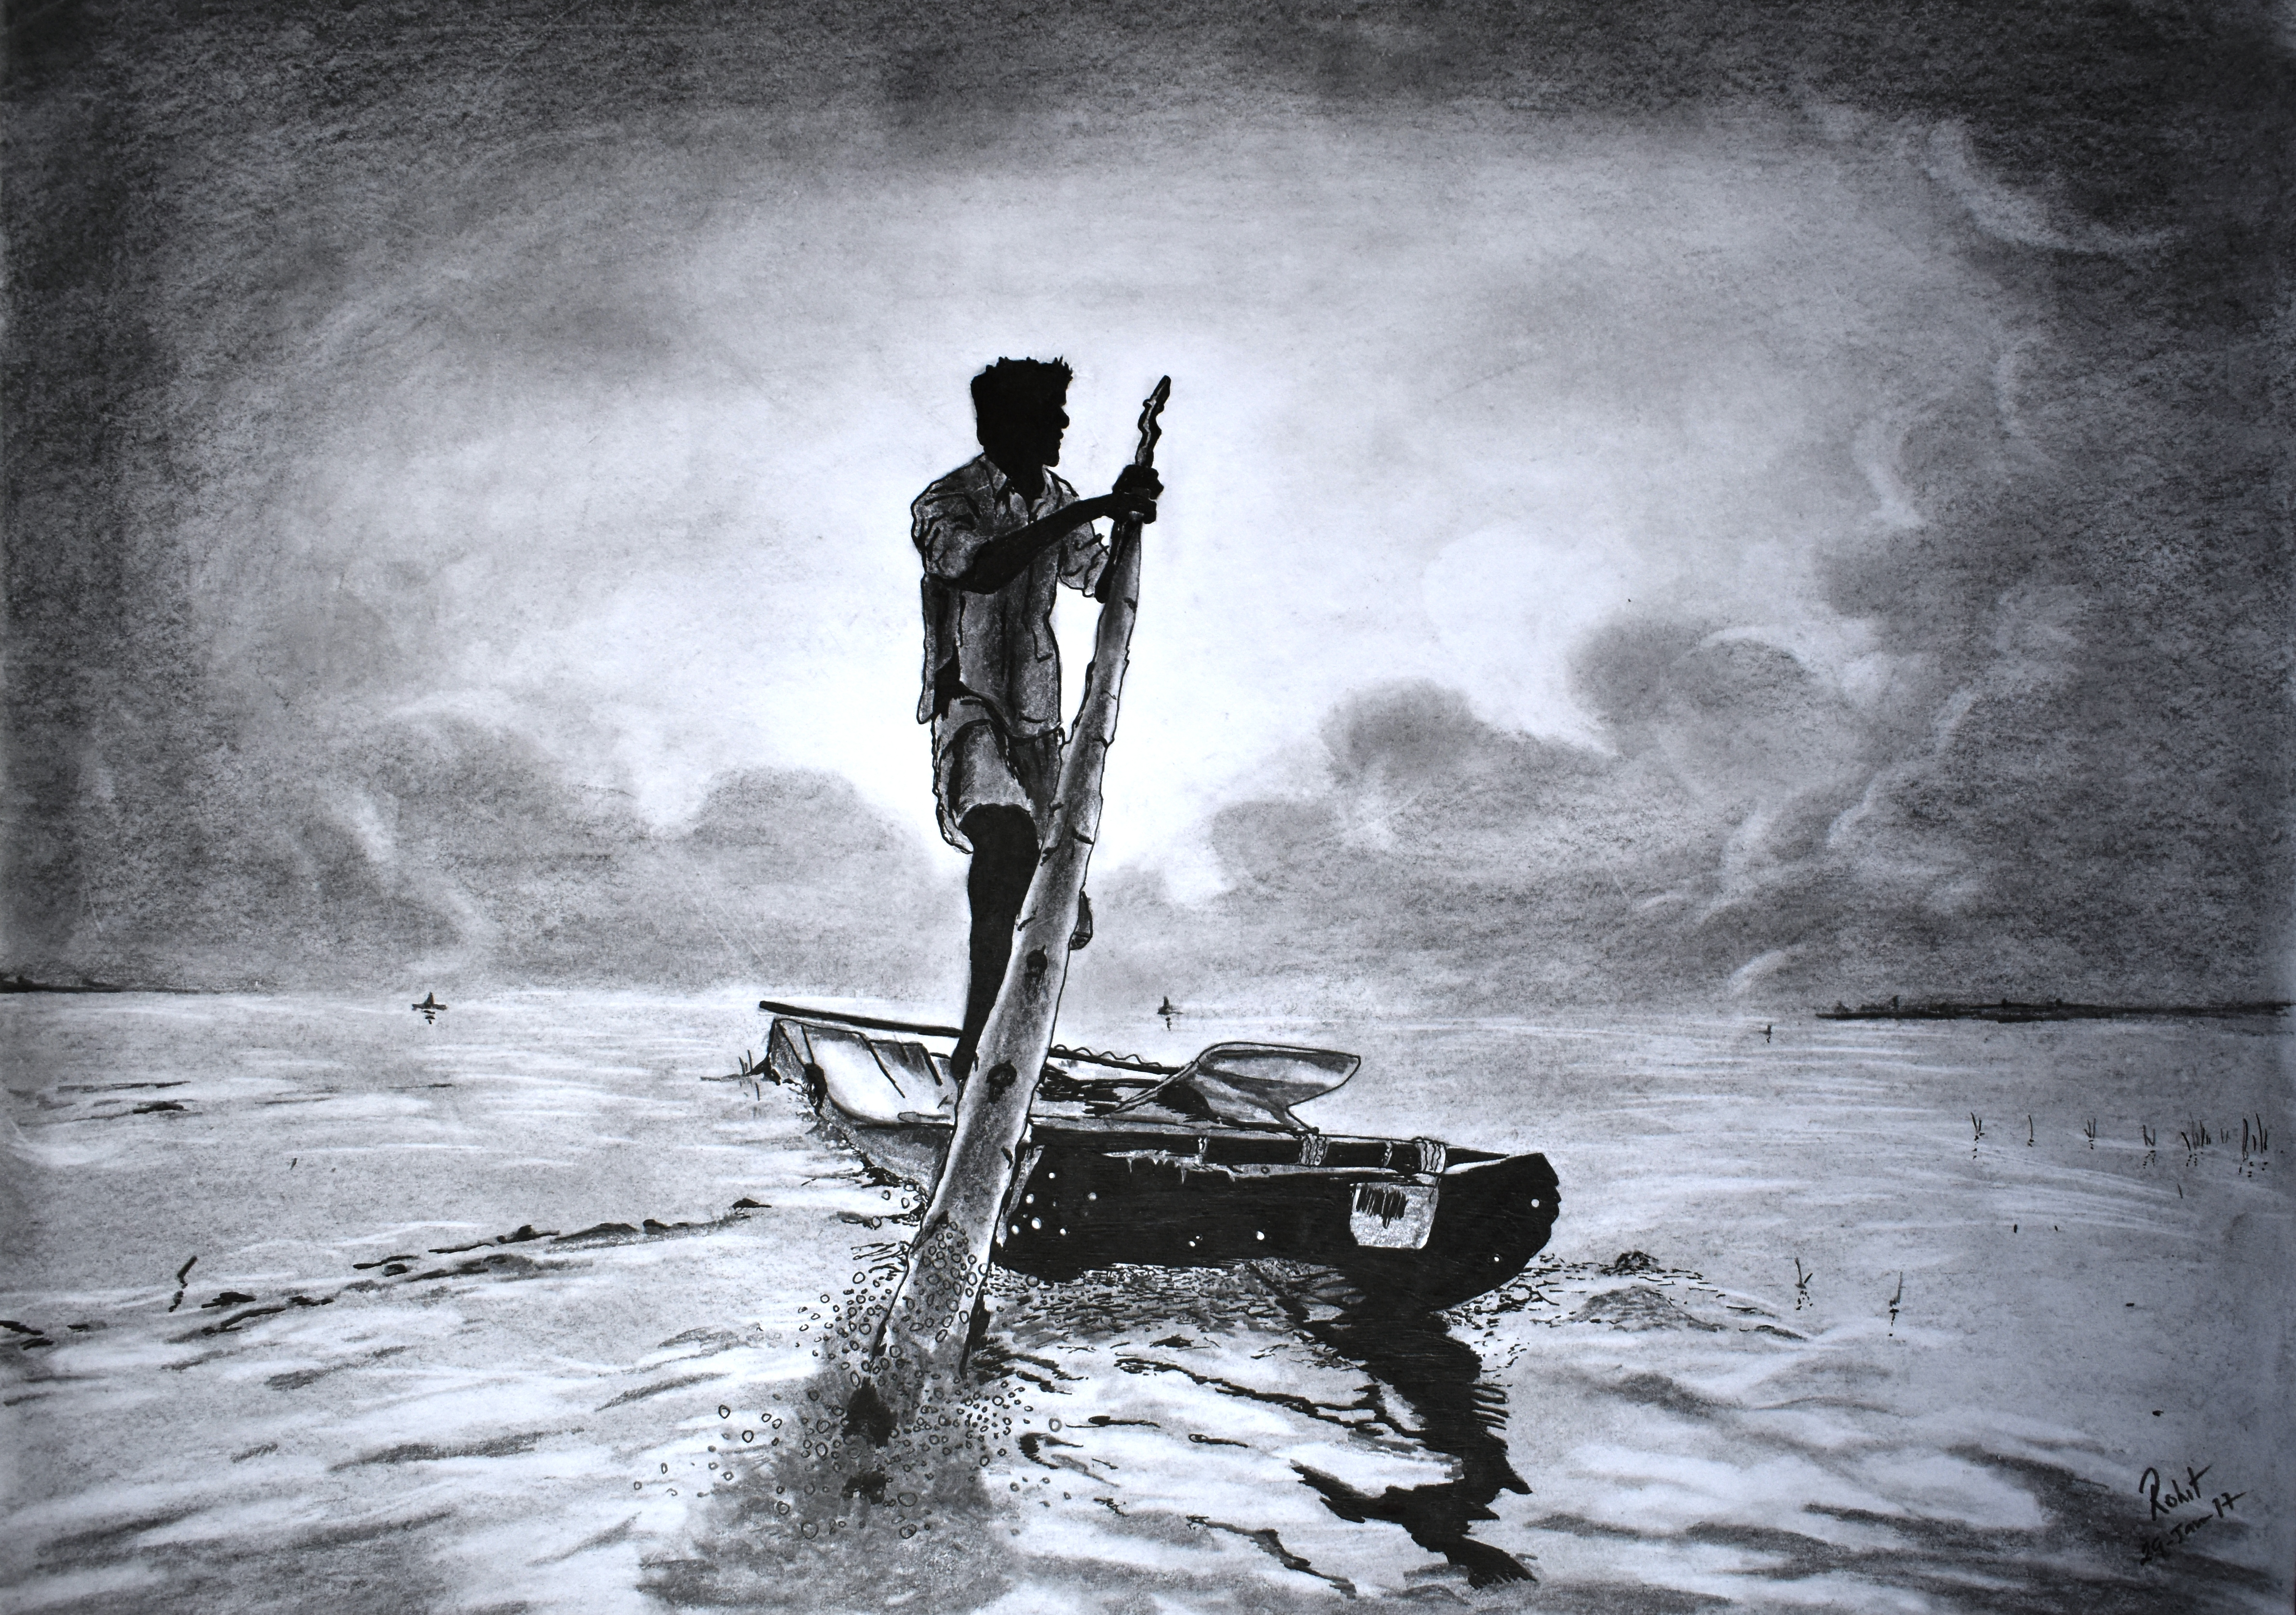 fisherman on Boat, 200 GSM PAPER, 12″ x 18″ CHARCOAL